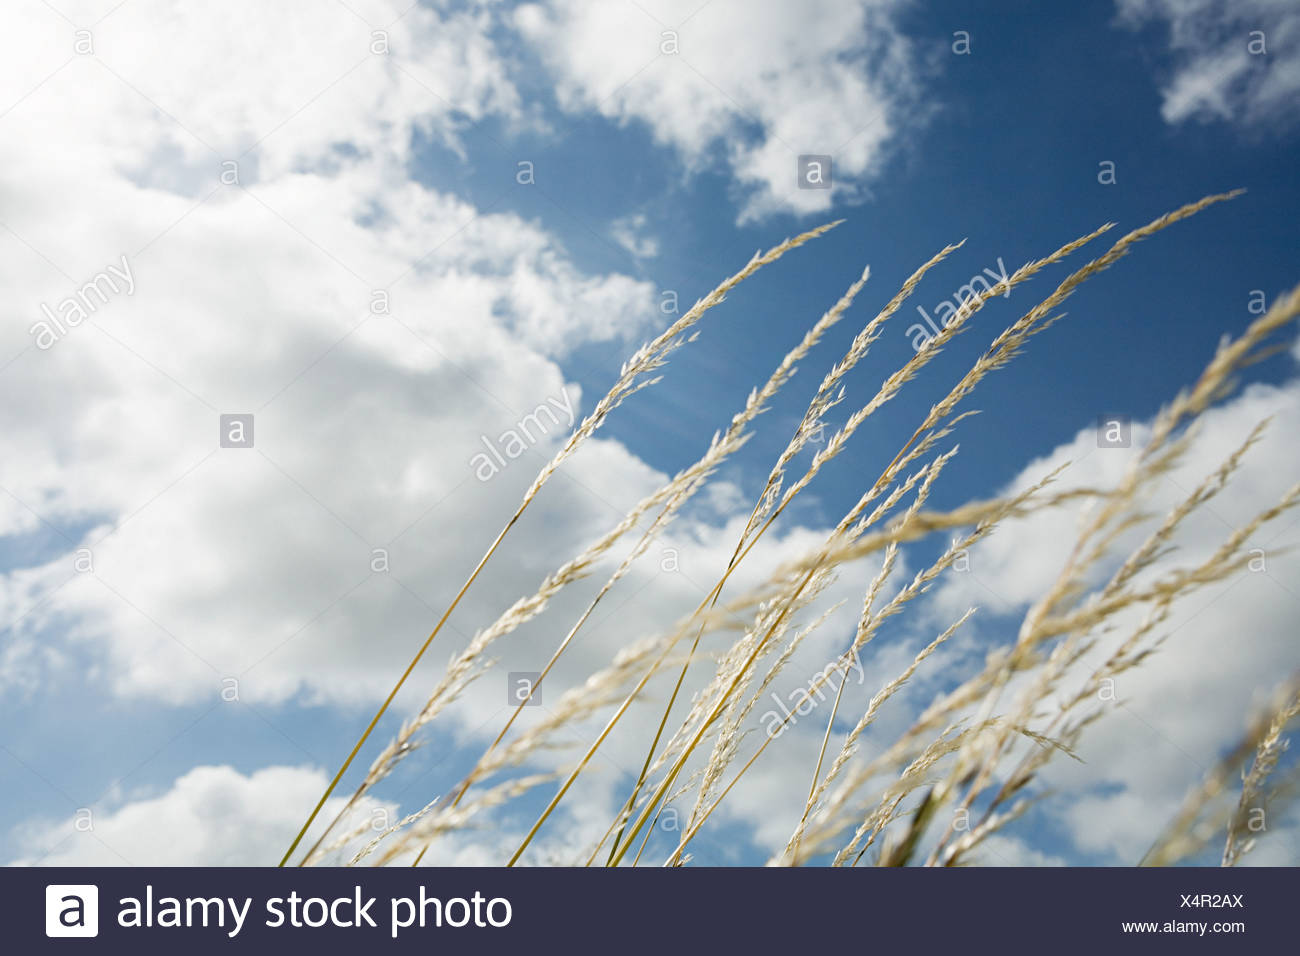 Grass blowing in the breeze - Stock Image